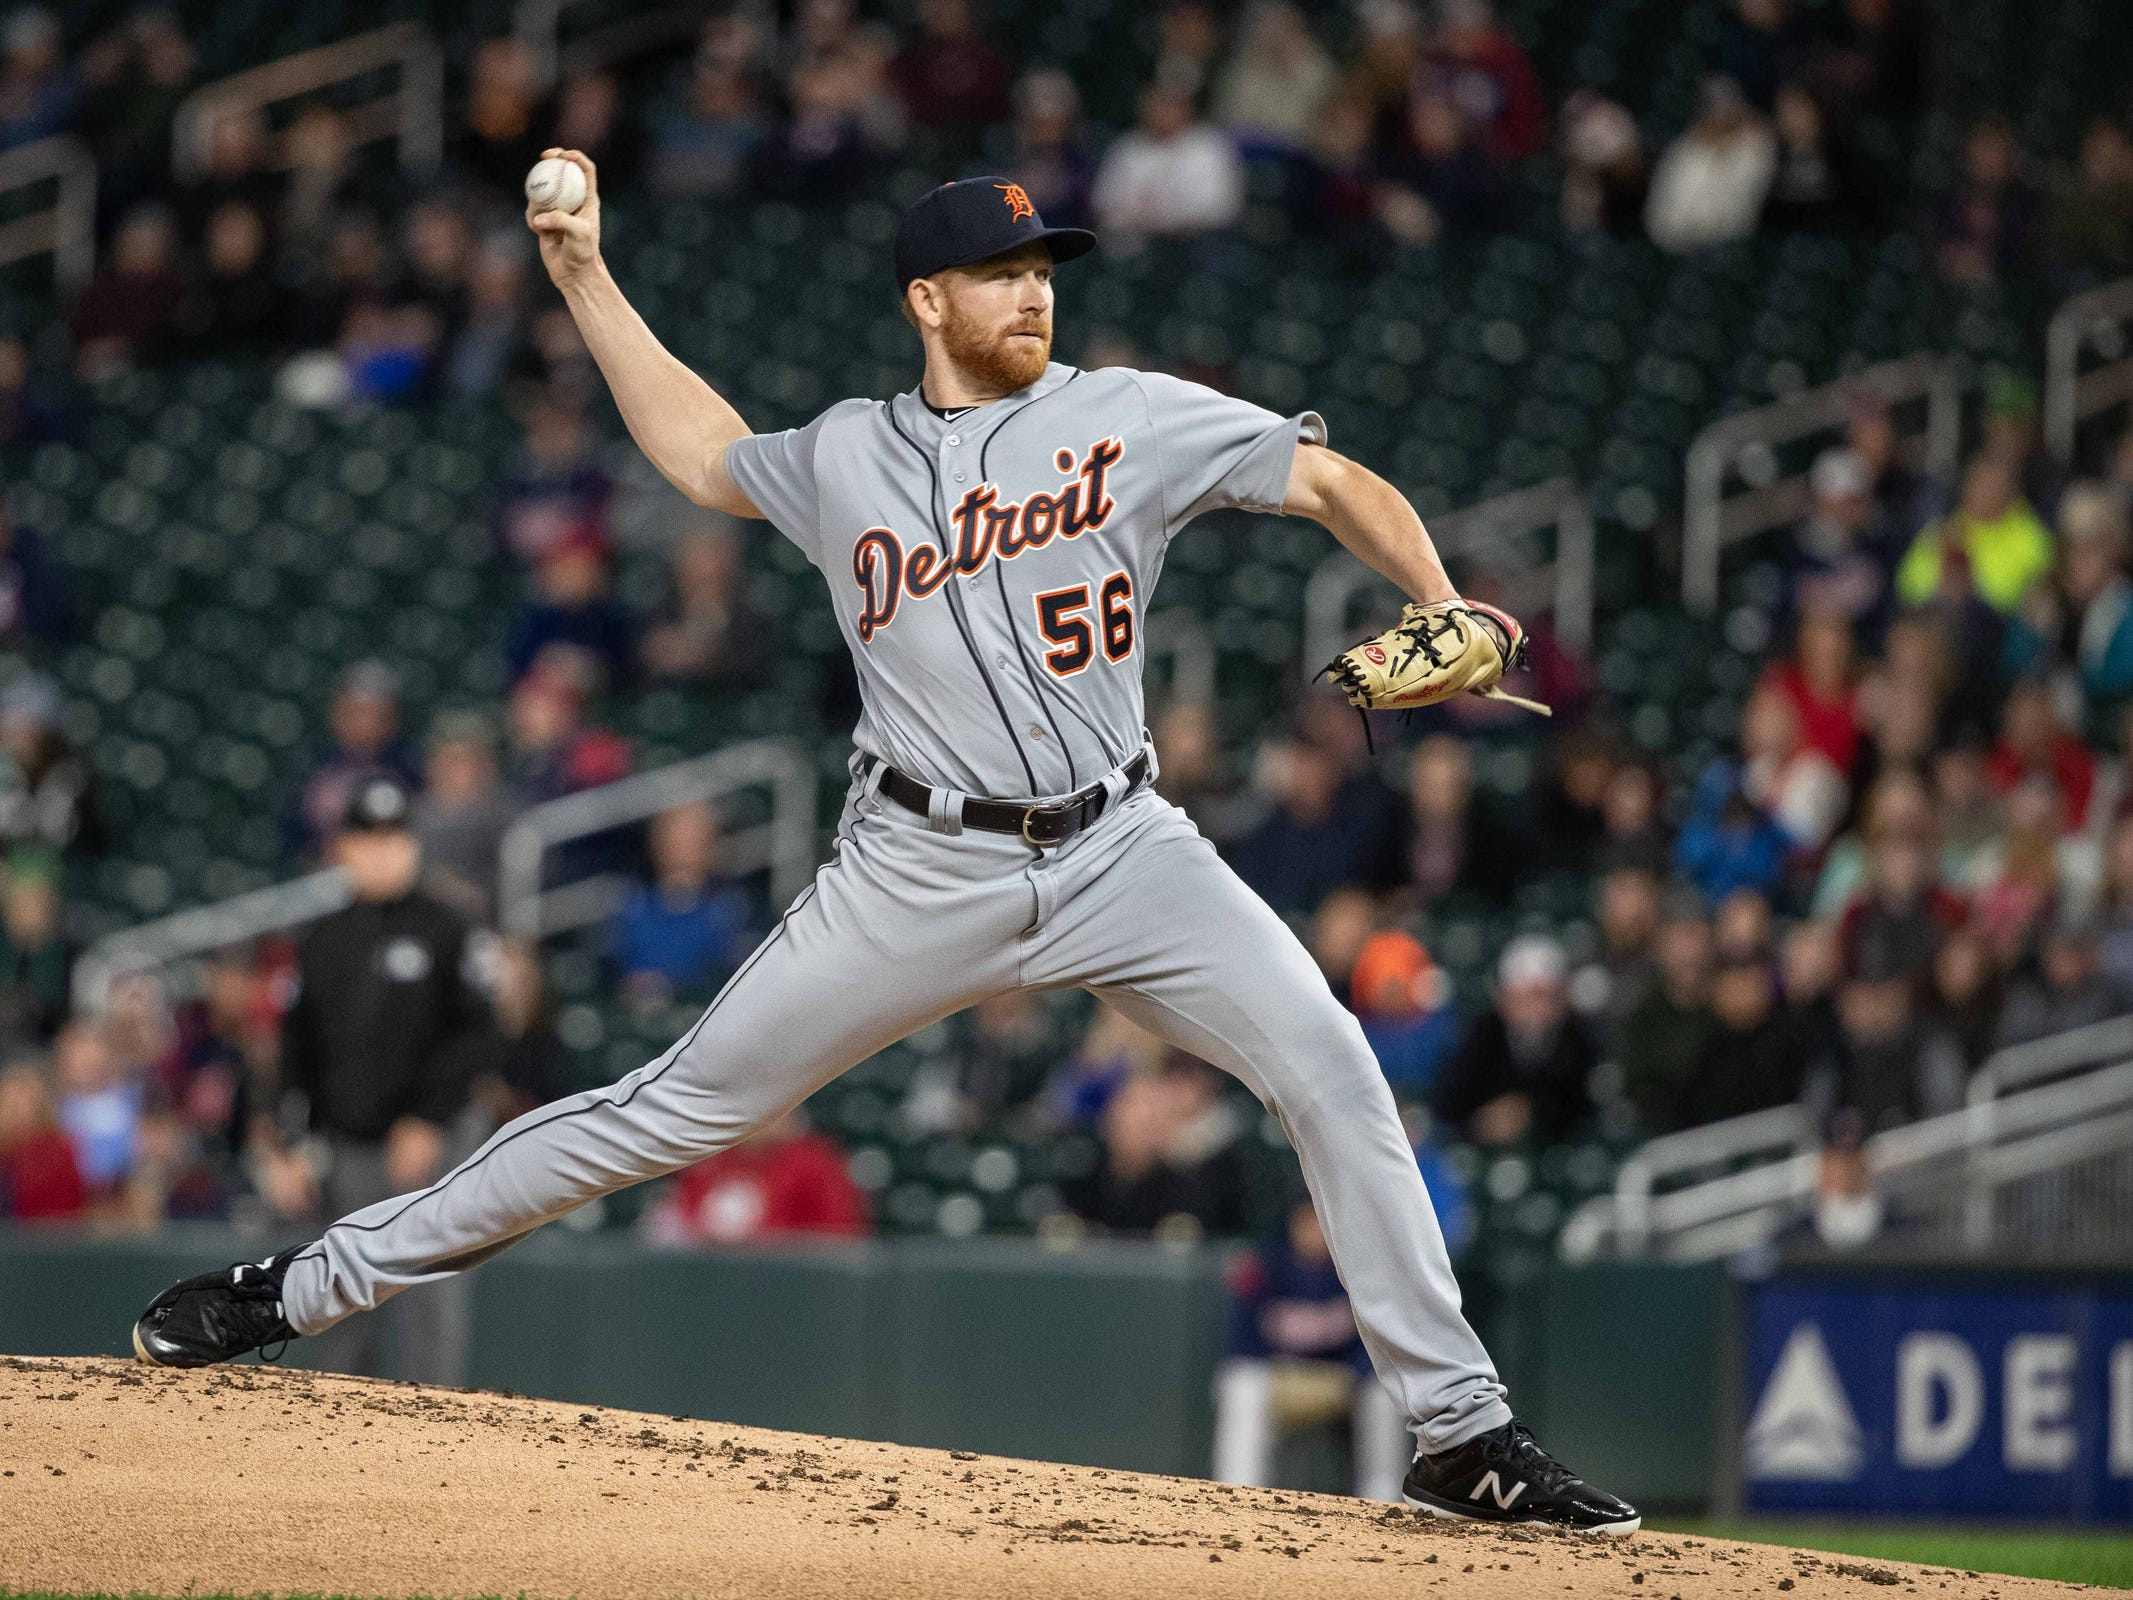 Detroit Tigers starting pitcher Spencer Turnbull (56) delivers a pitch during the first inning against the Minnesota Twins at Target Field on Sept. 25, 2018.